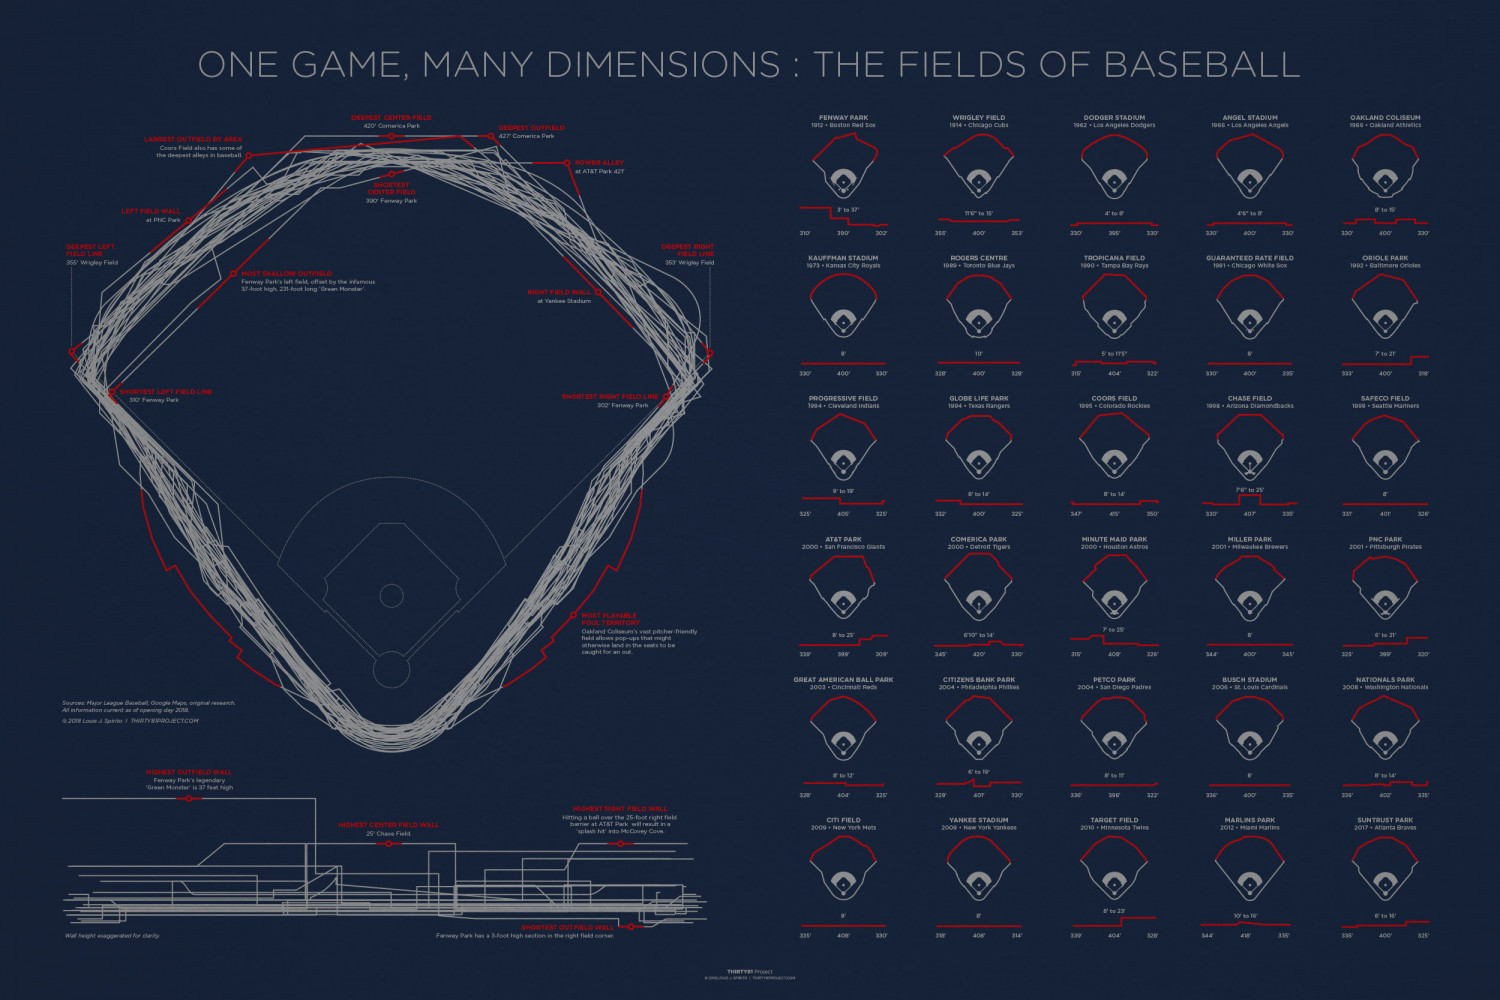 One Game, Many Dimensions 2018 Infographic